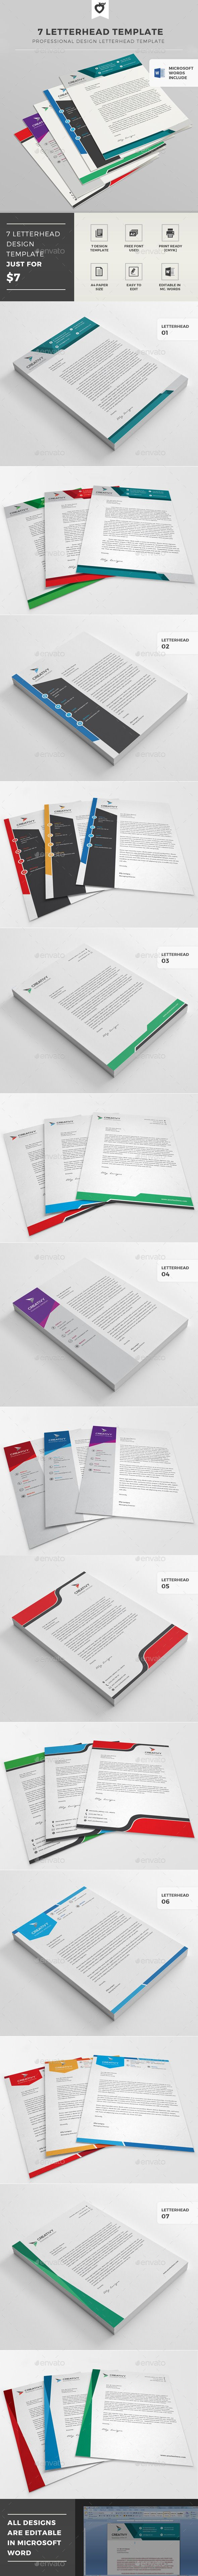 Letterhead Template - Letterhead Design Template Vector EPS, AI Illustrator. Download here: https://graphicriver.net/item/letterhead-template/12251139?ref=yinkira